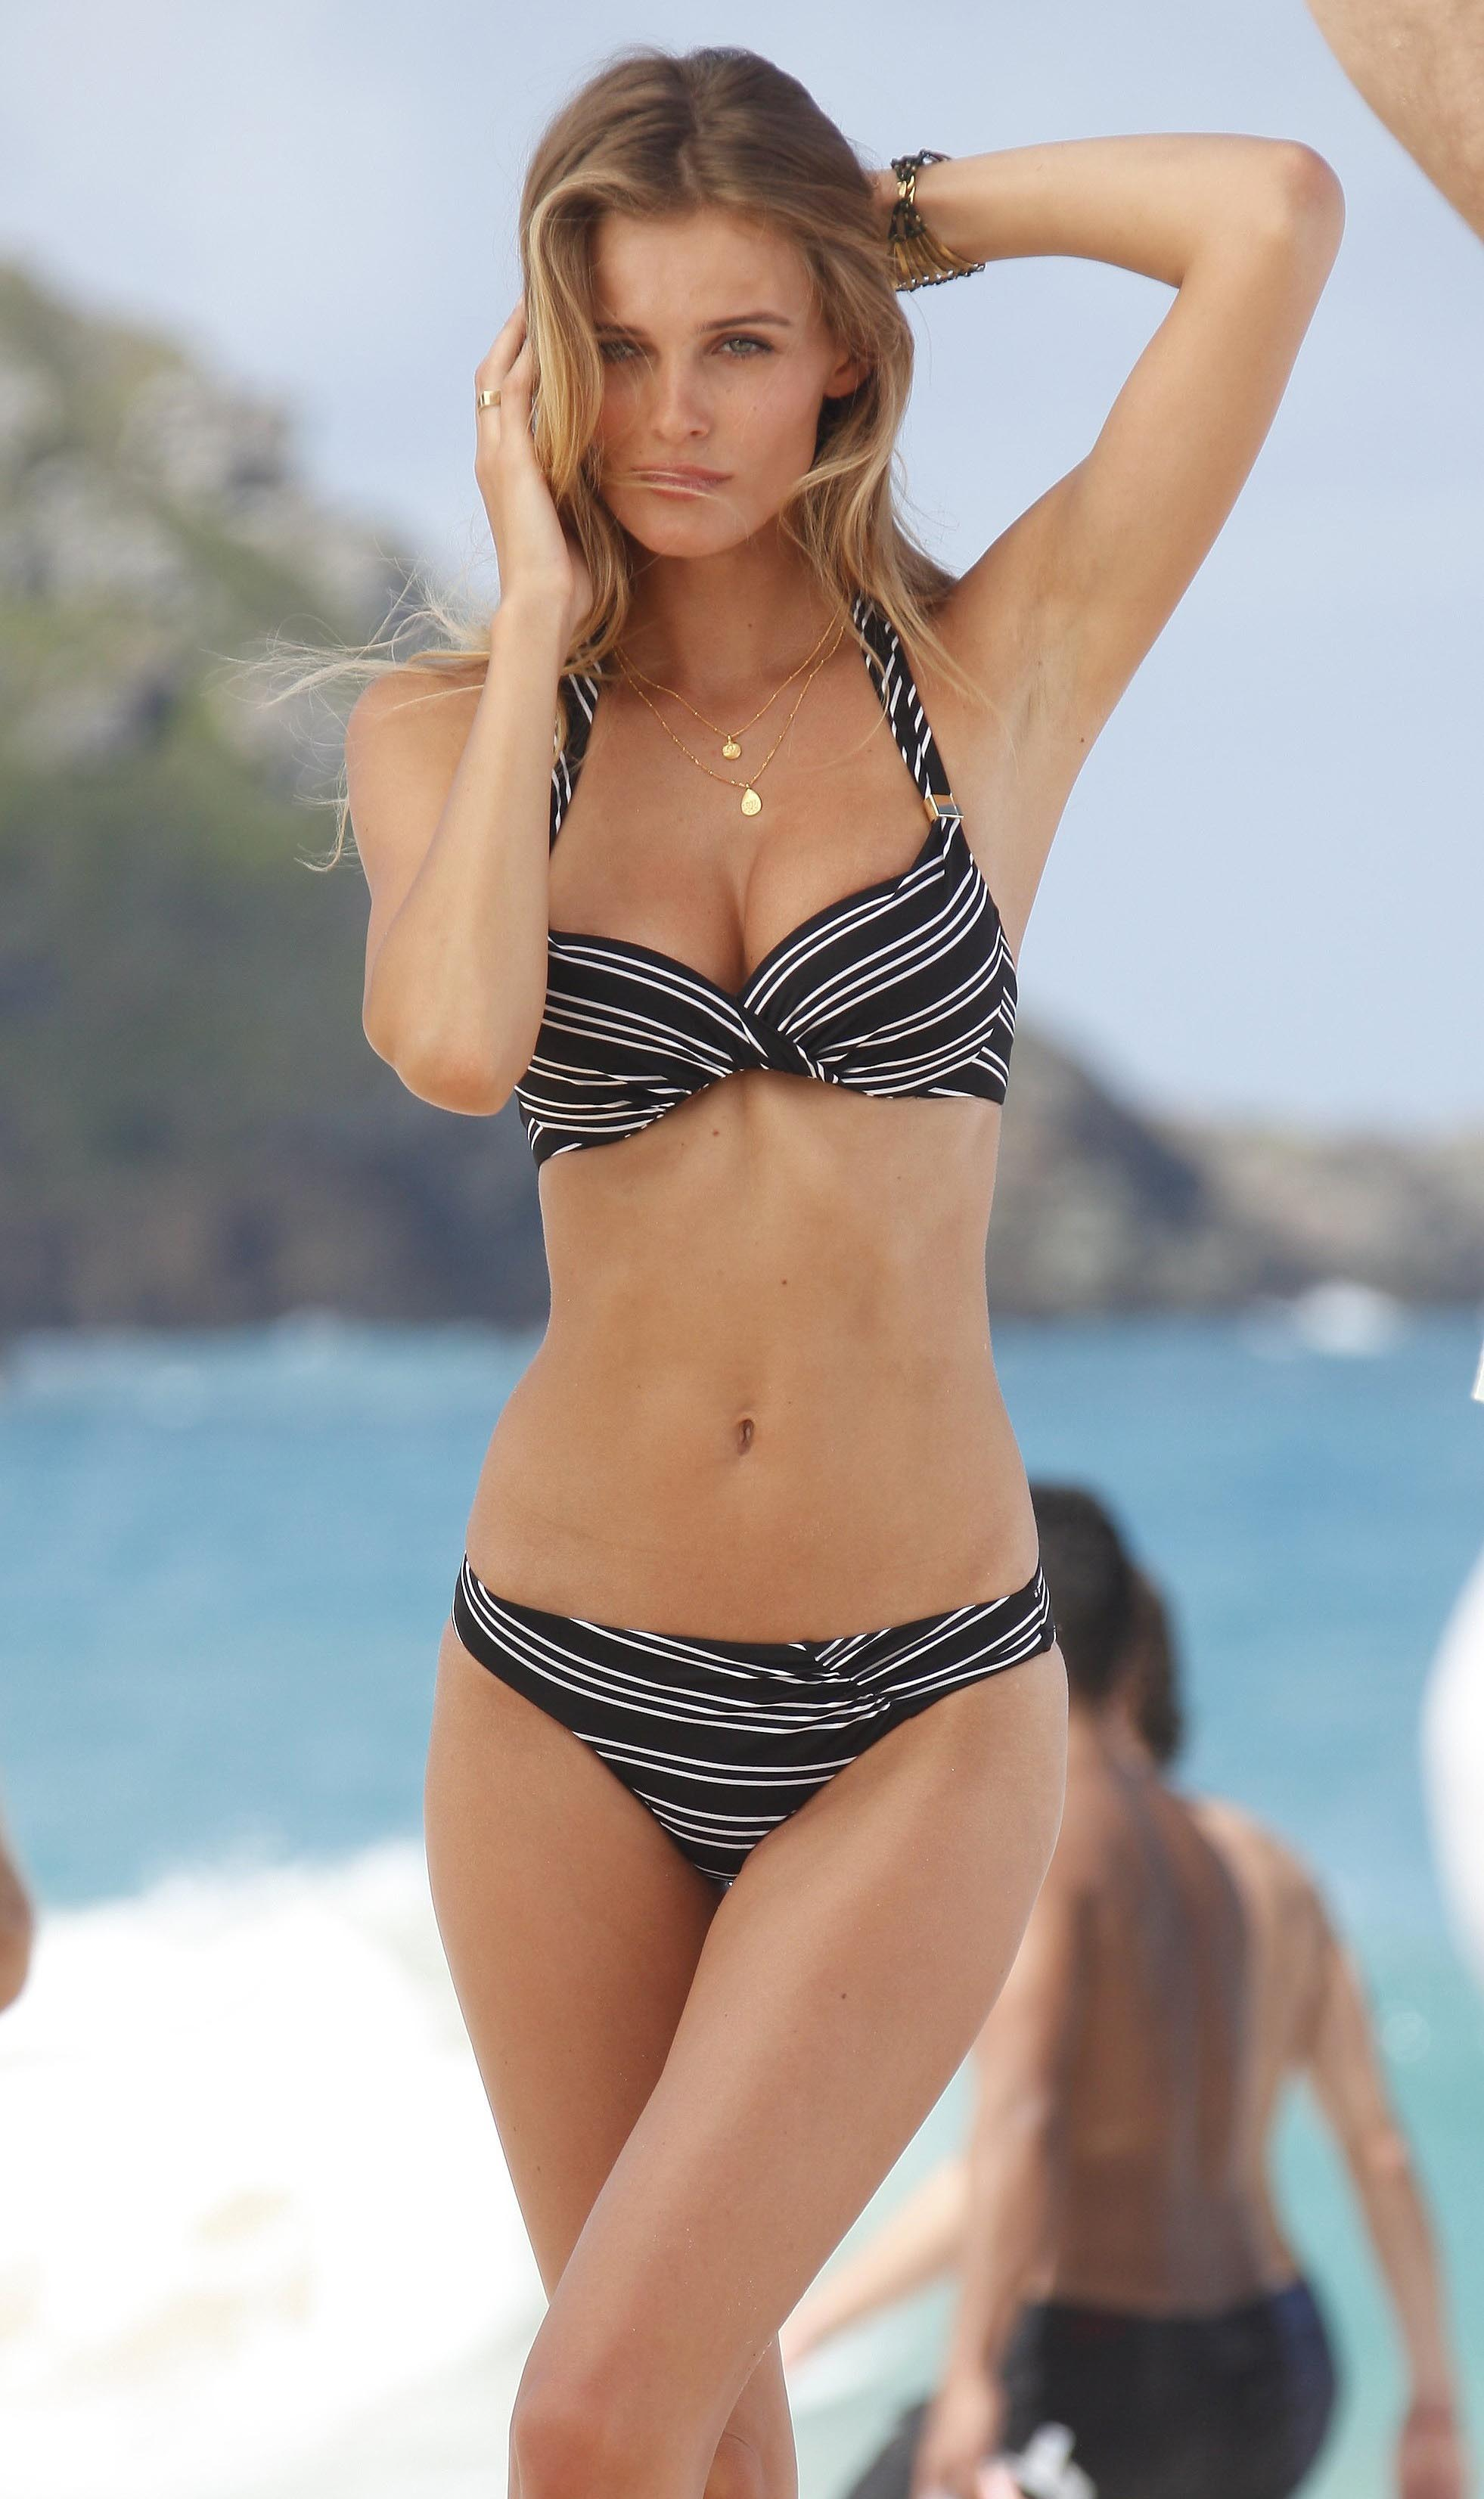 78033_Edita_Vilkeviciute_Bikini_Photoshoot_for_Victorias_Secret_in_St_Barts_January_27_2013_102_122_1197lo